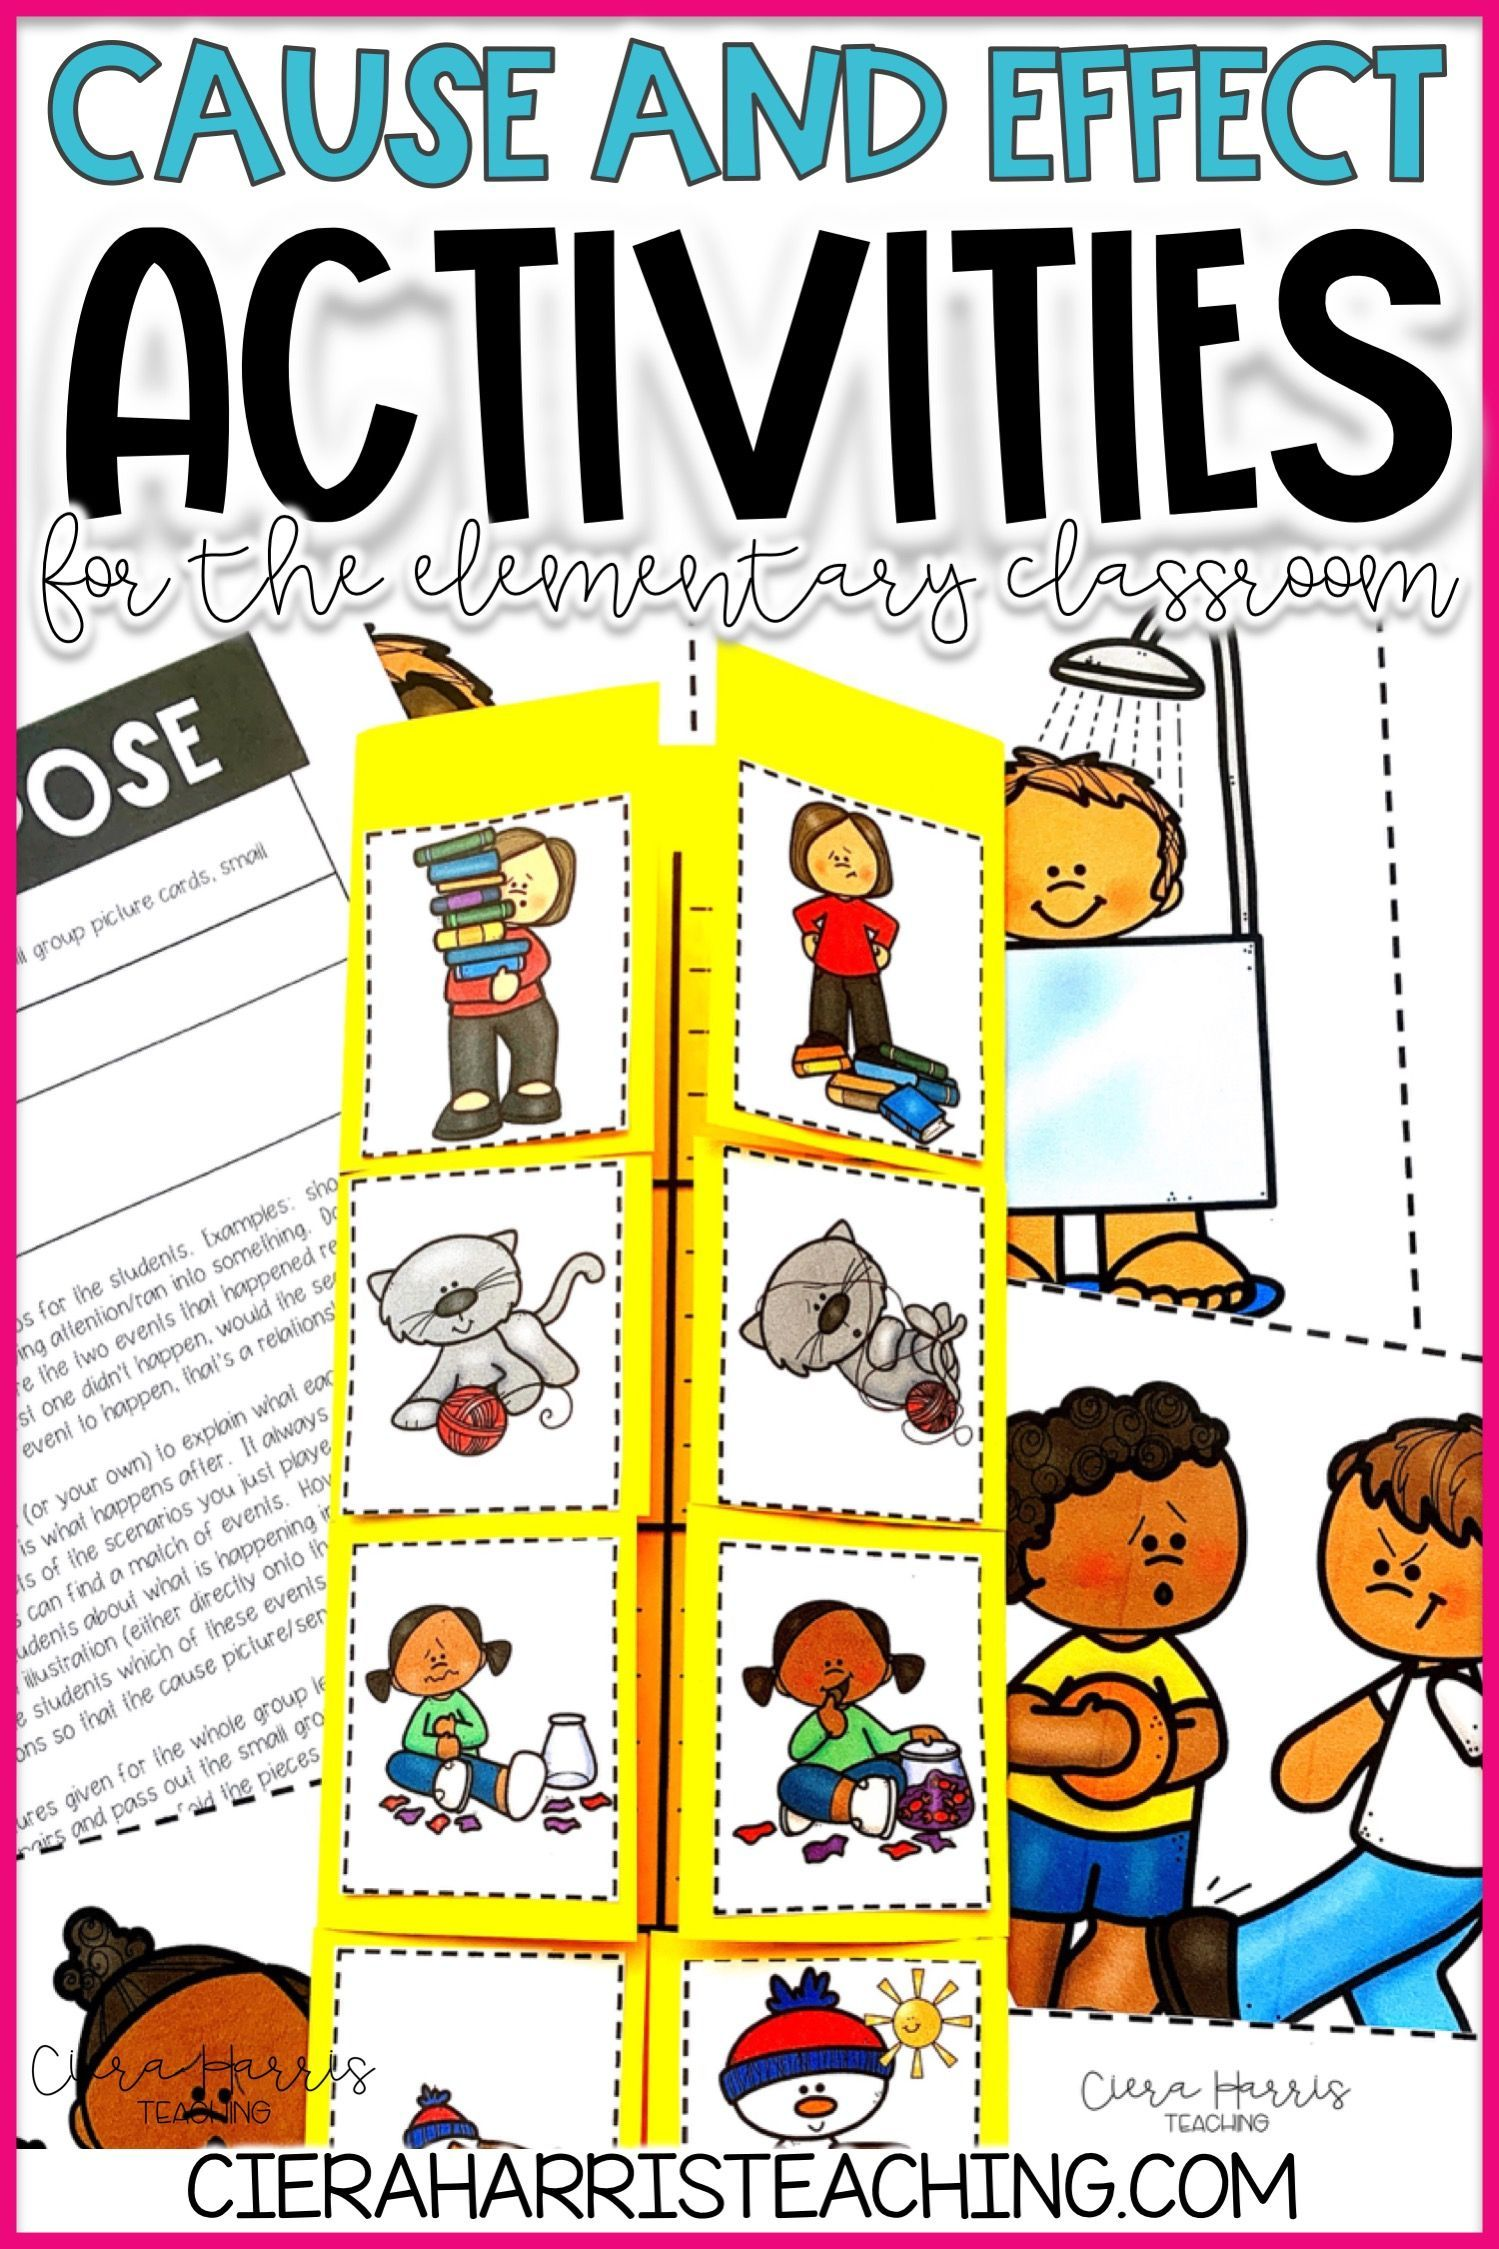 Cause And Effect Activities For The Elementary Classroom